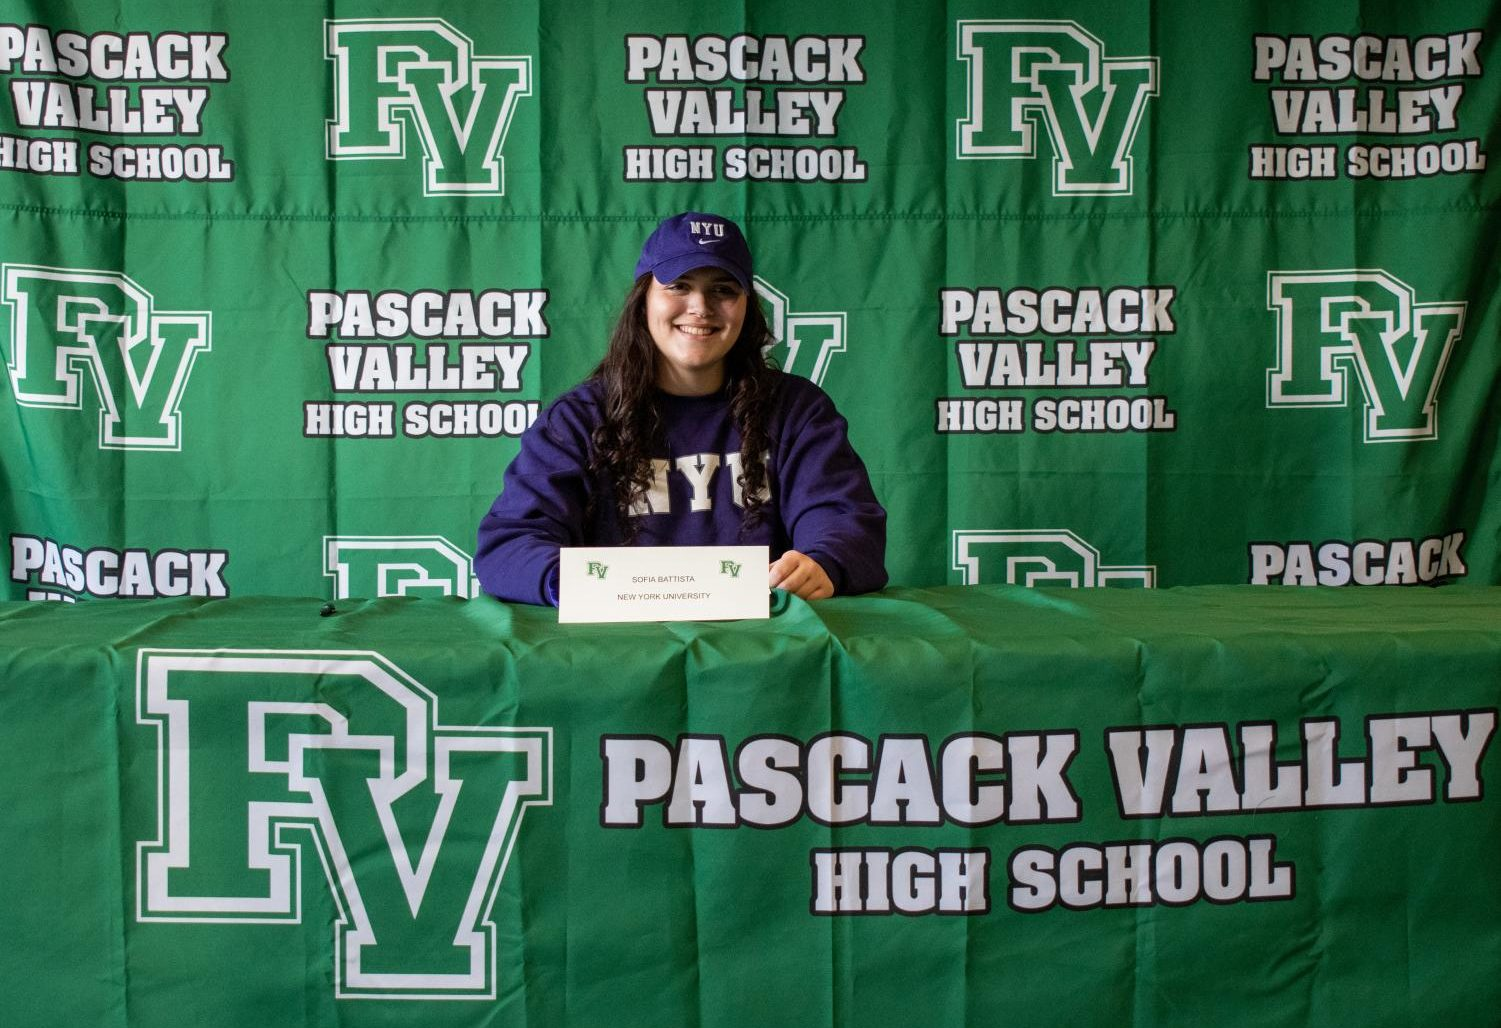 PV senior Sofia Battista at the podium of Pascack Valley's winter signing day ceremony, where she officially committed to NYU for basketball.